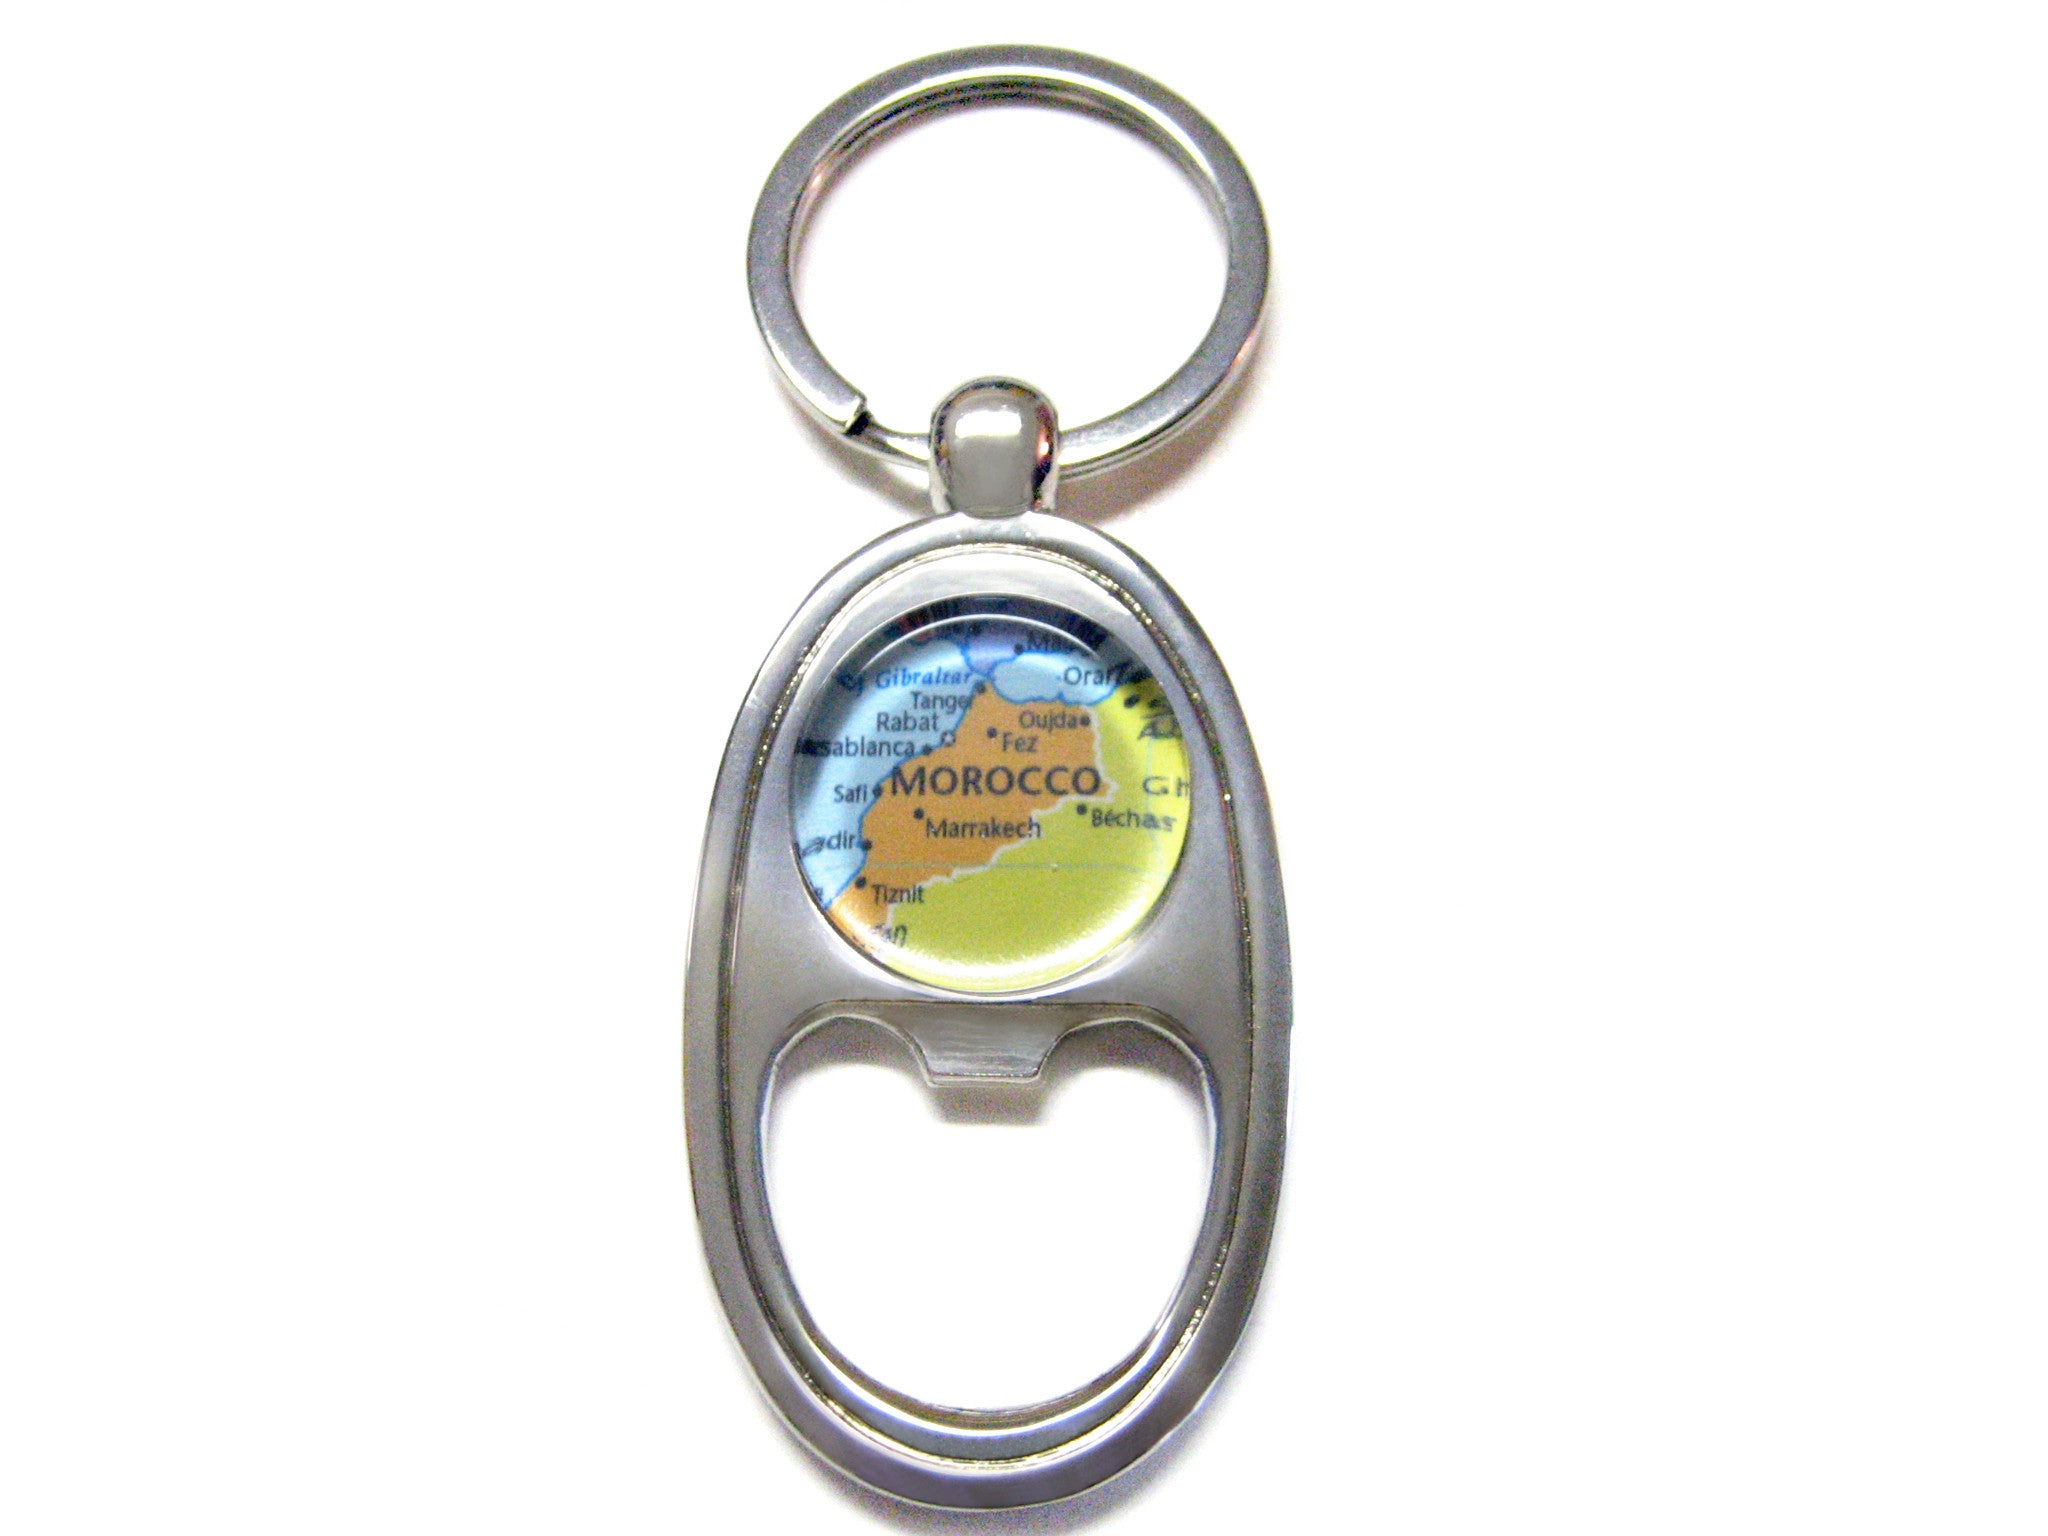 Morocco Map Bottle Opener Key Chain